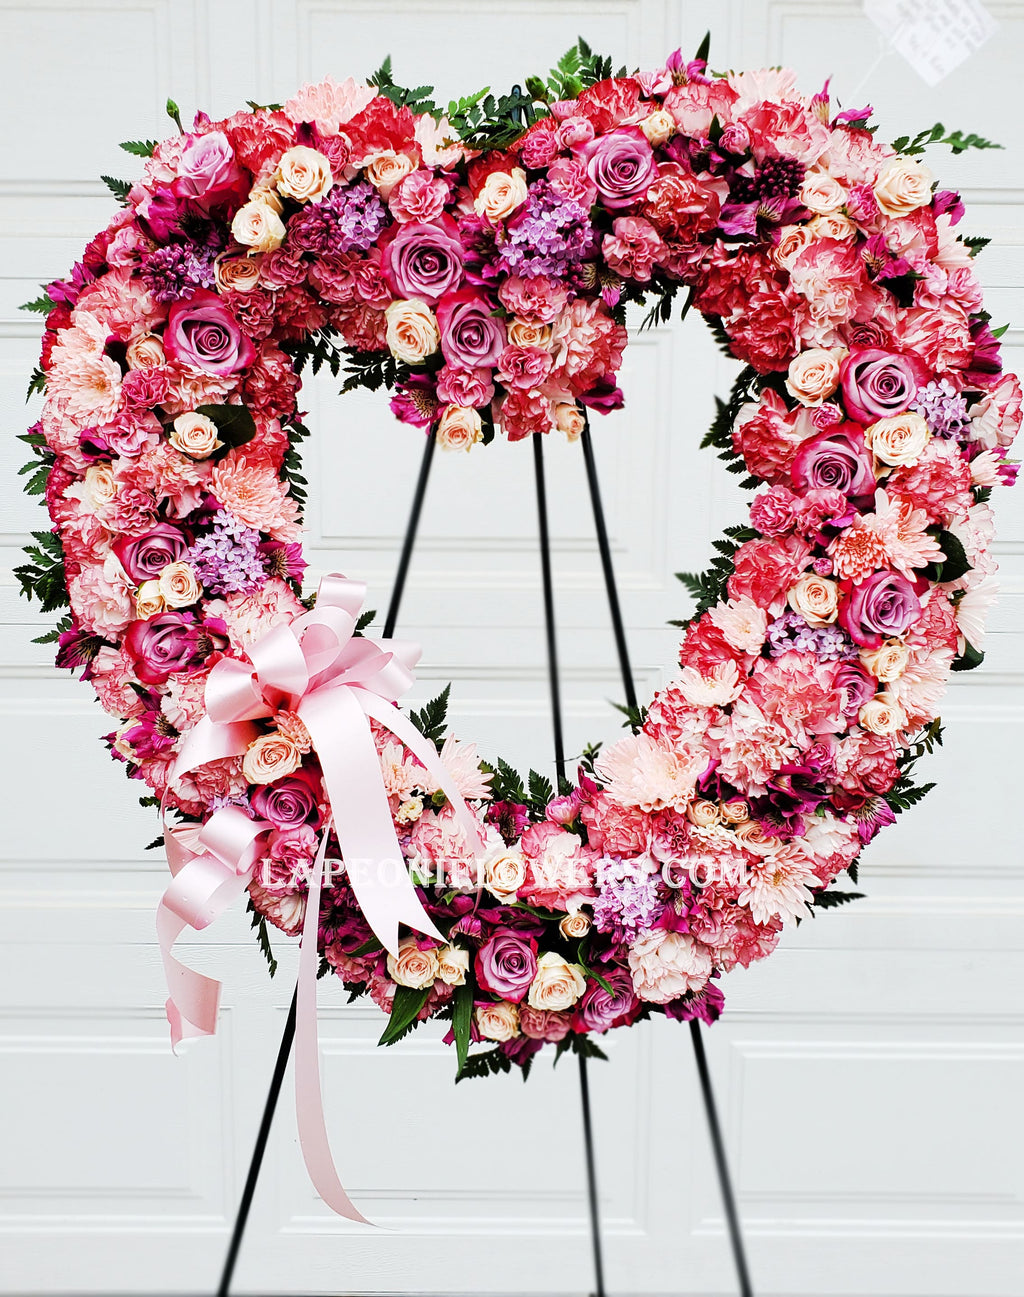 Heart Eternity Wreath - Lapeoni Flowers and Events